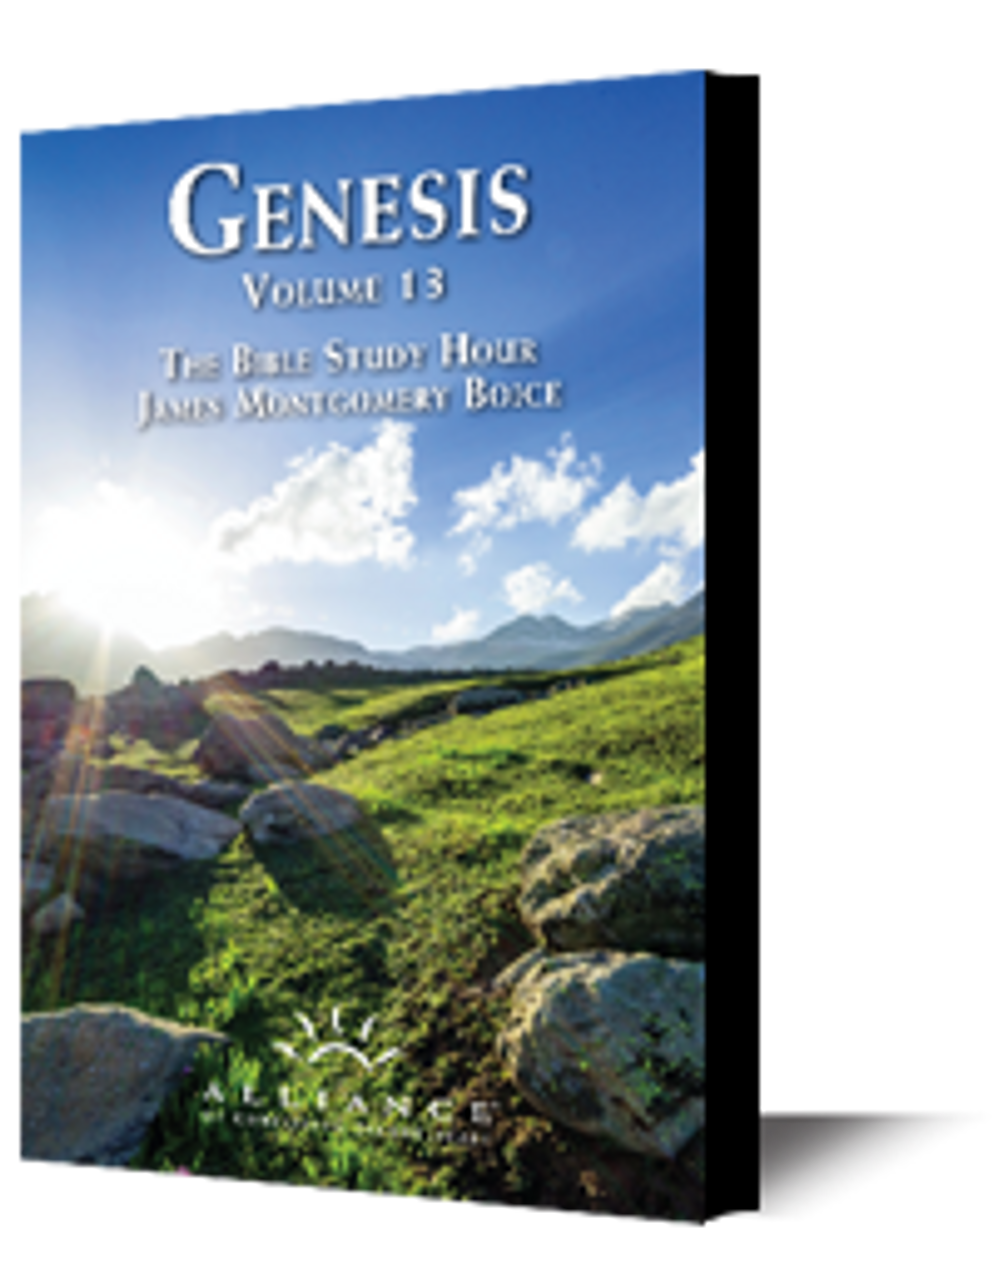 Genesis, Volume 13 (mp3 downloads)